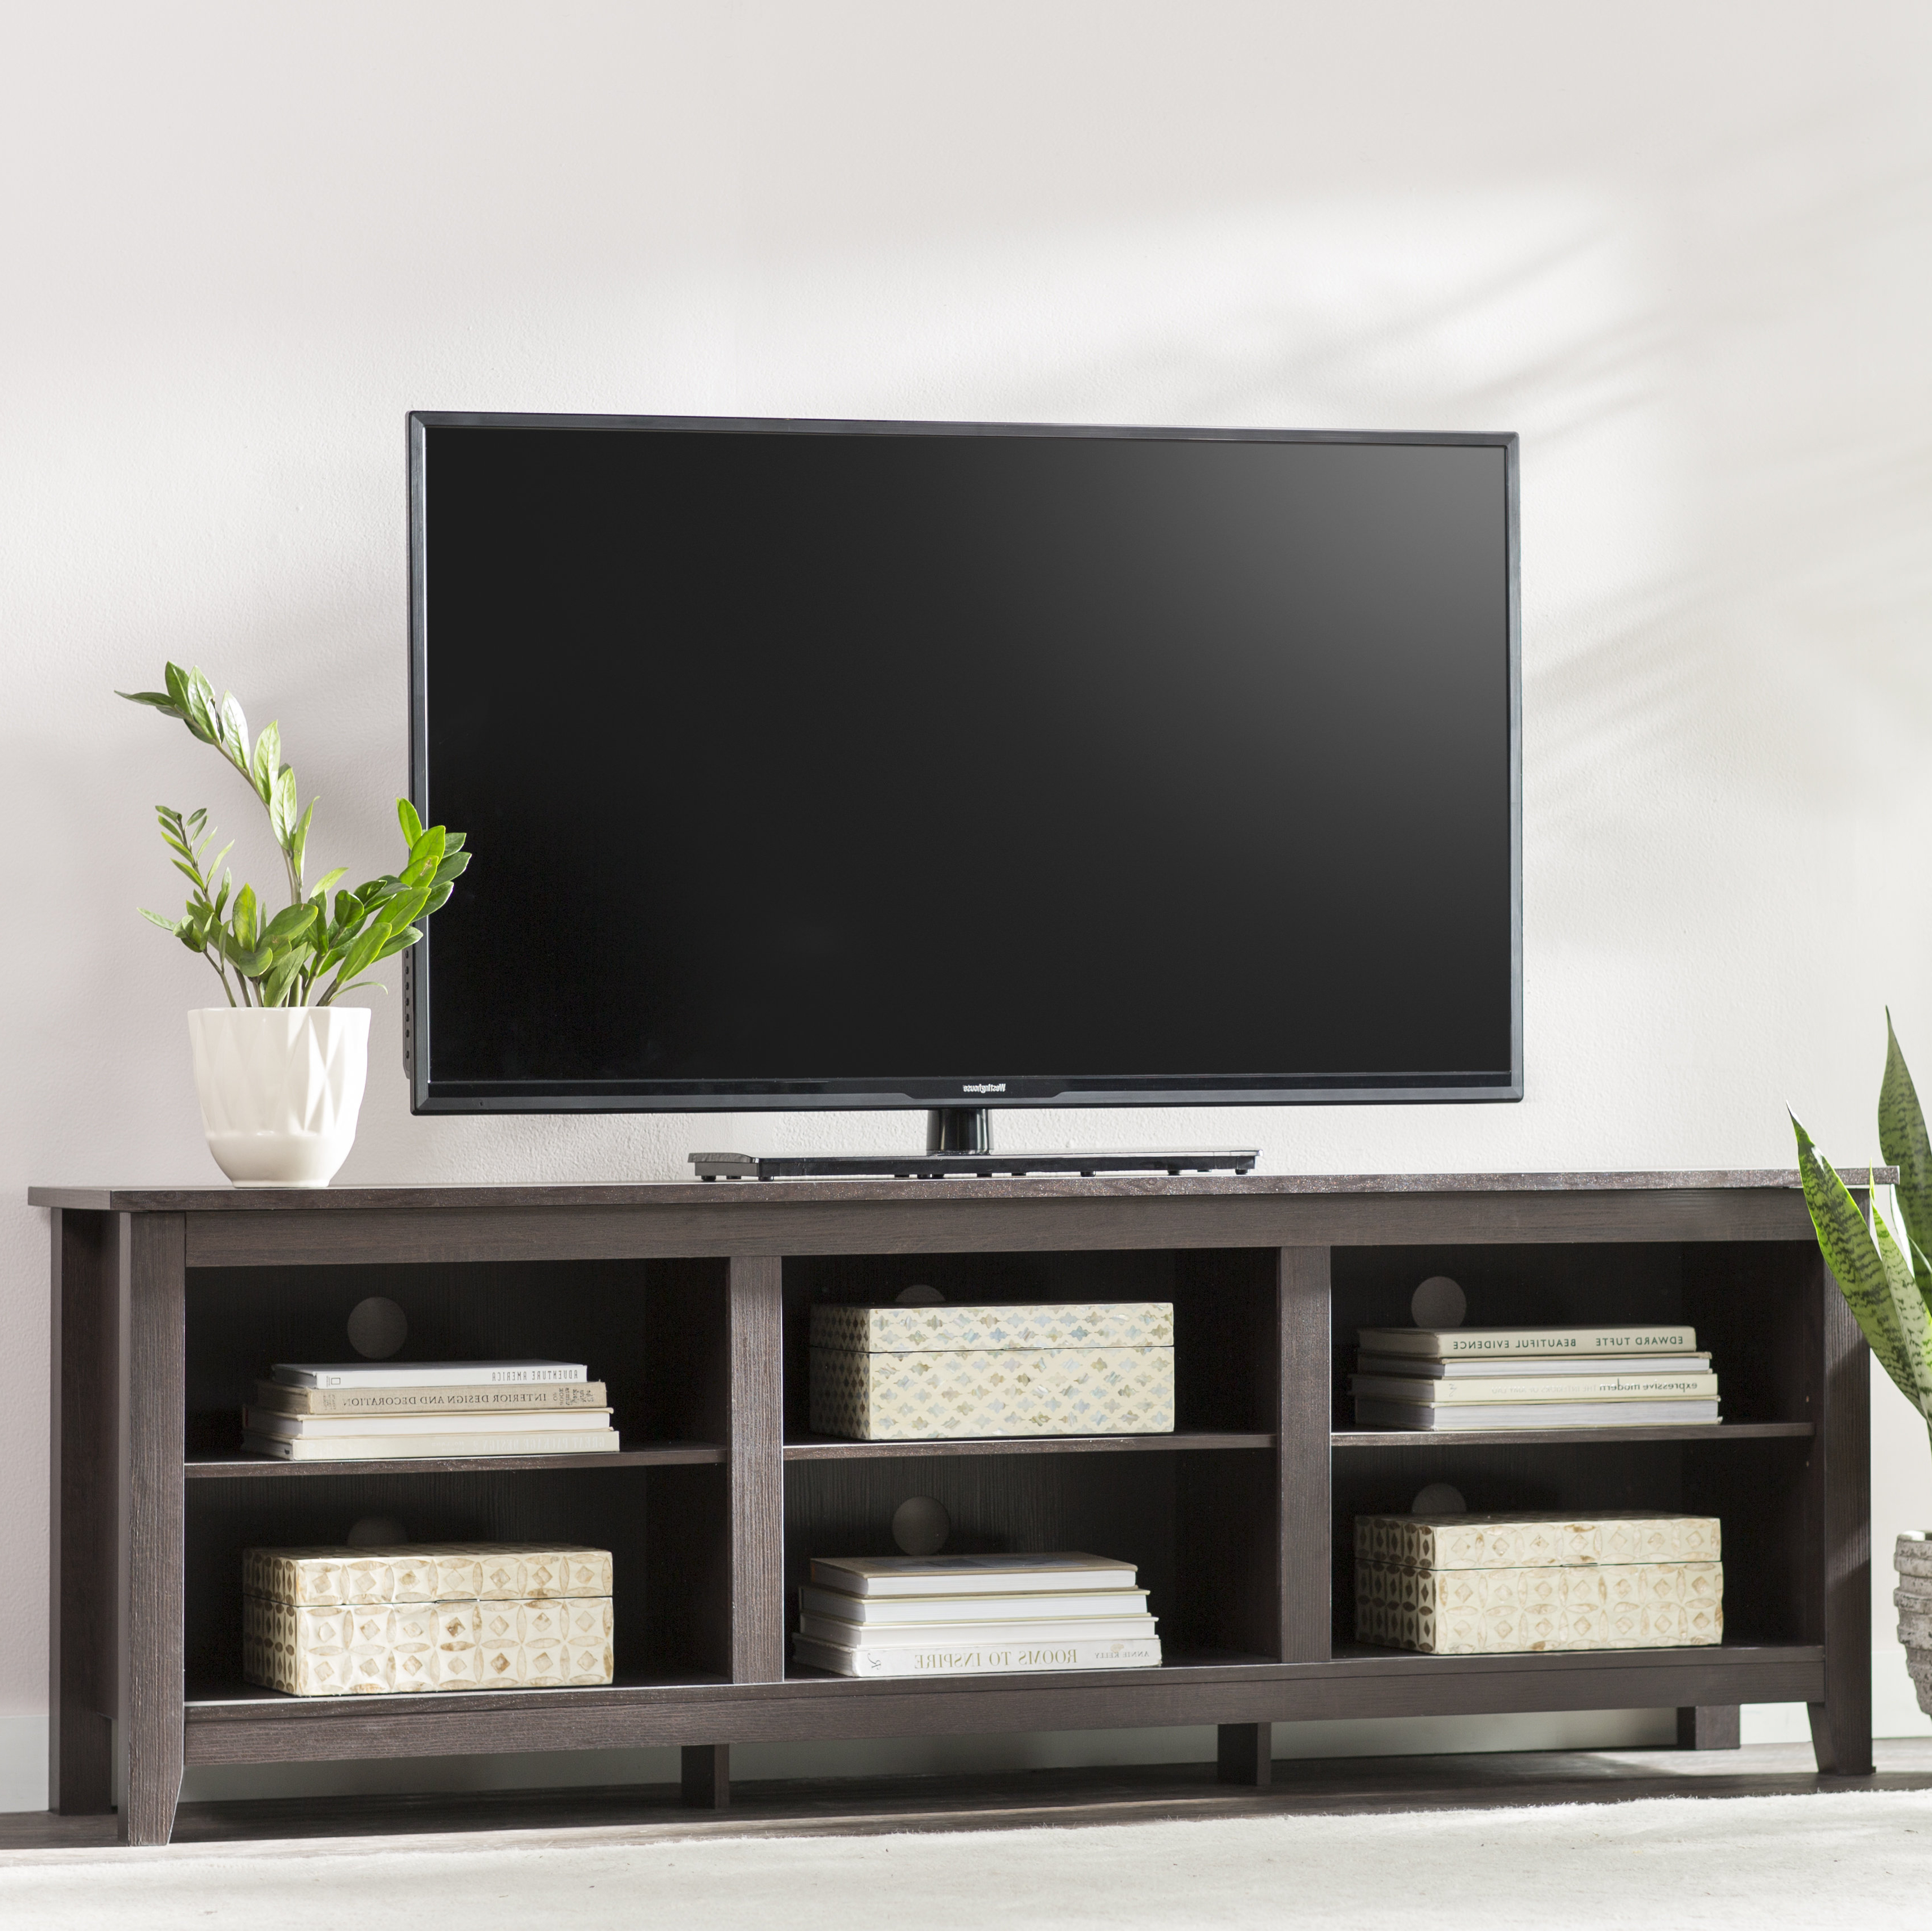 Tv Stand For 75 Inch Tv | Wayfair Intended For Laurent 60 Inch Tv Stands (View 10 of 20)